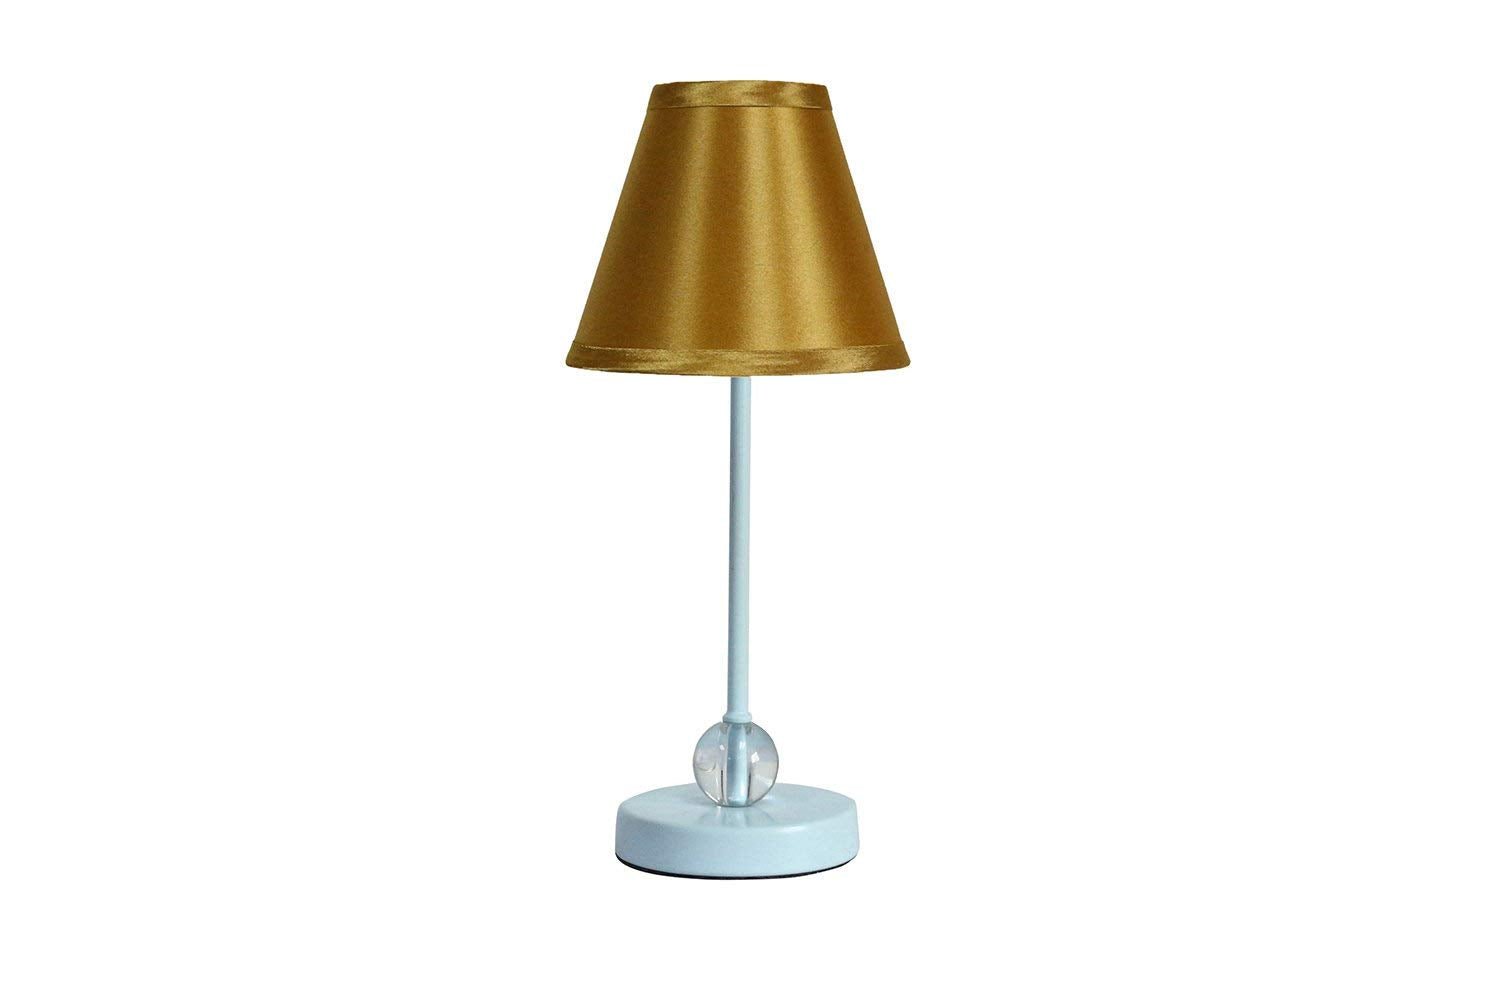 Chelsea Mini Accent Lamp with Gold Satin Lamp Shade